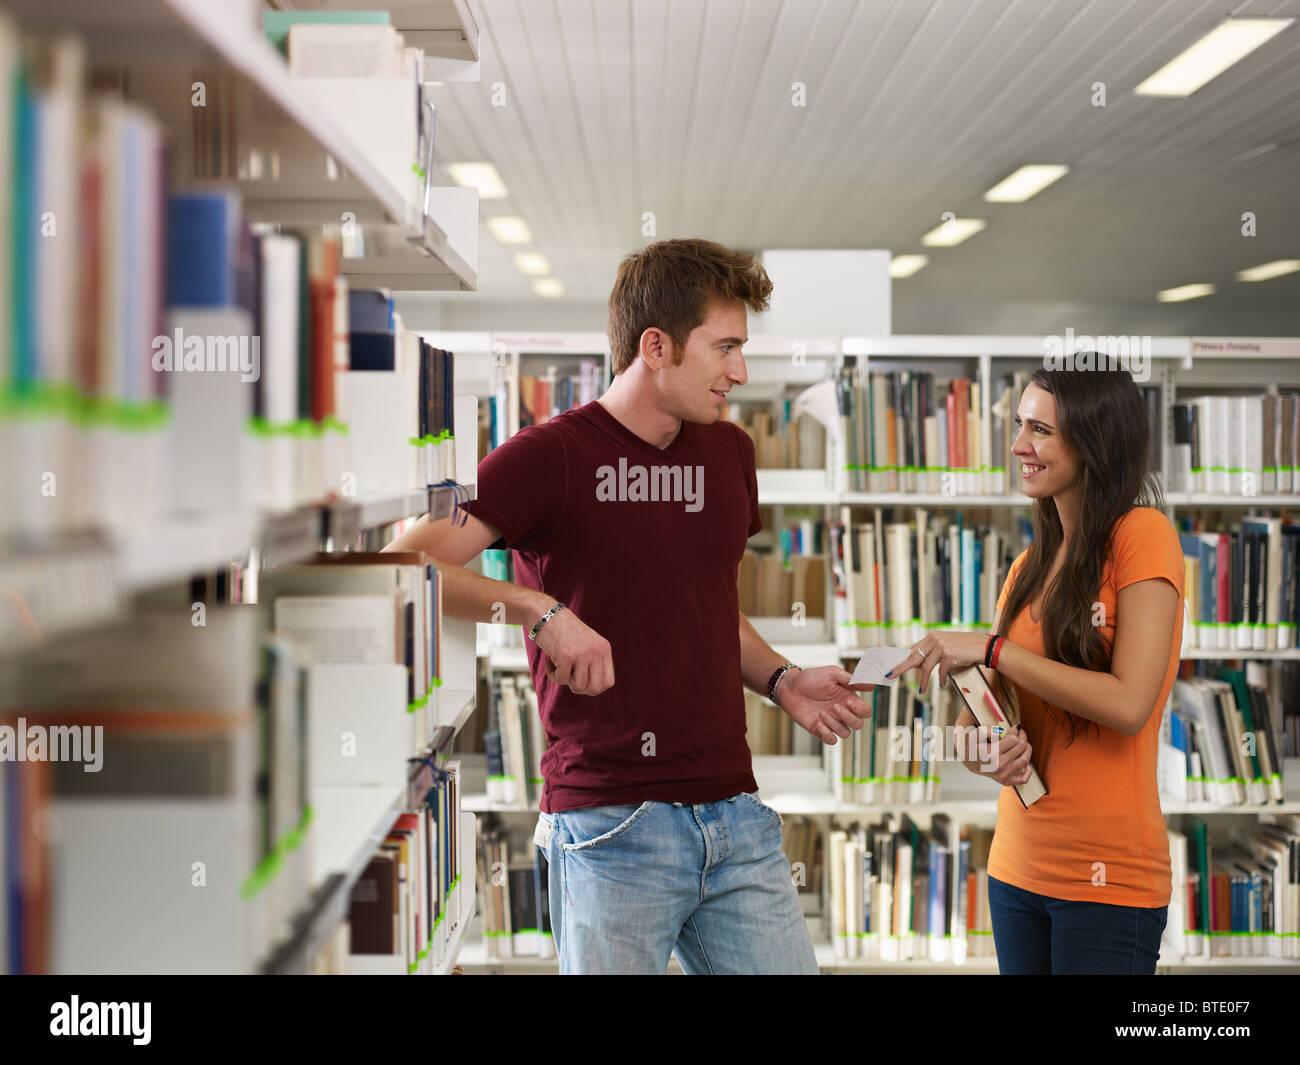 female college student giving phone number to her mate. Horizontal shape, side view, copy space - Stock Image